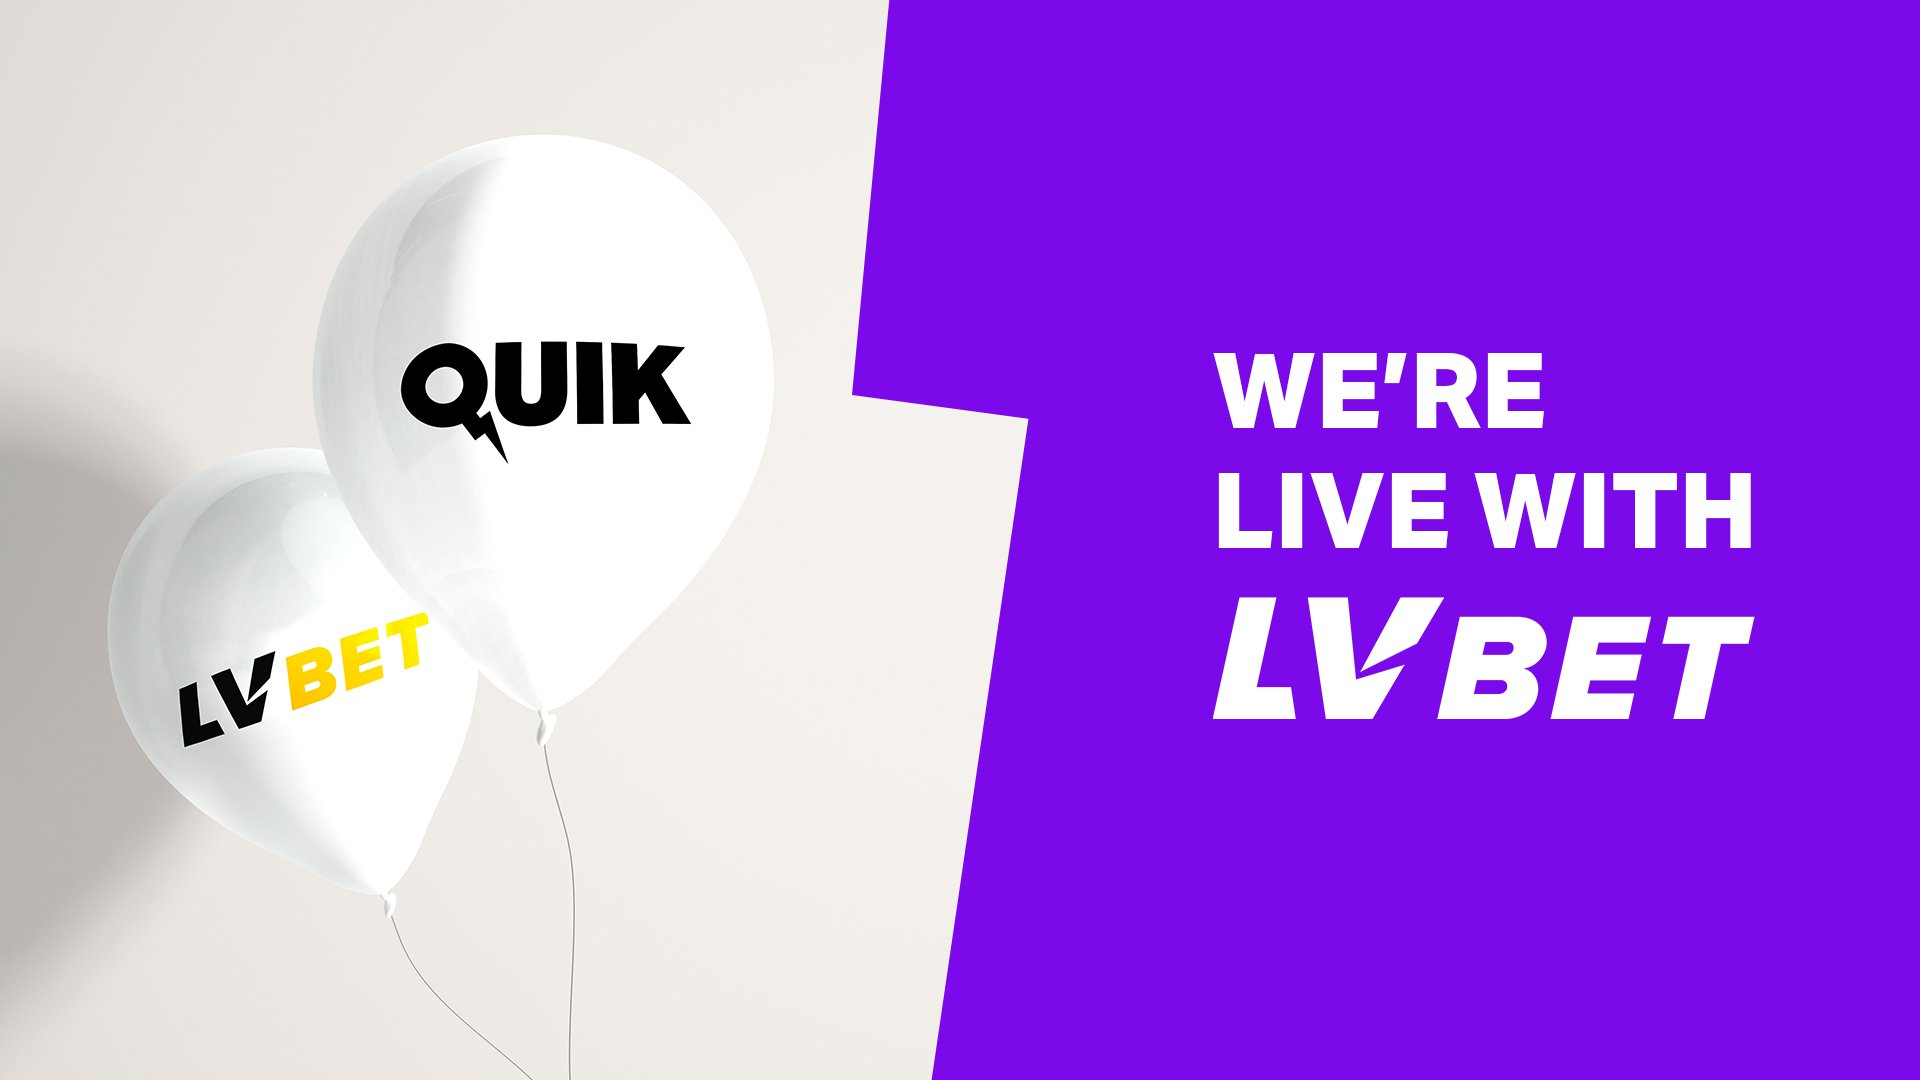 LV BET players can now play Quik's portfolio of Unique Live Games